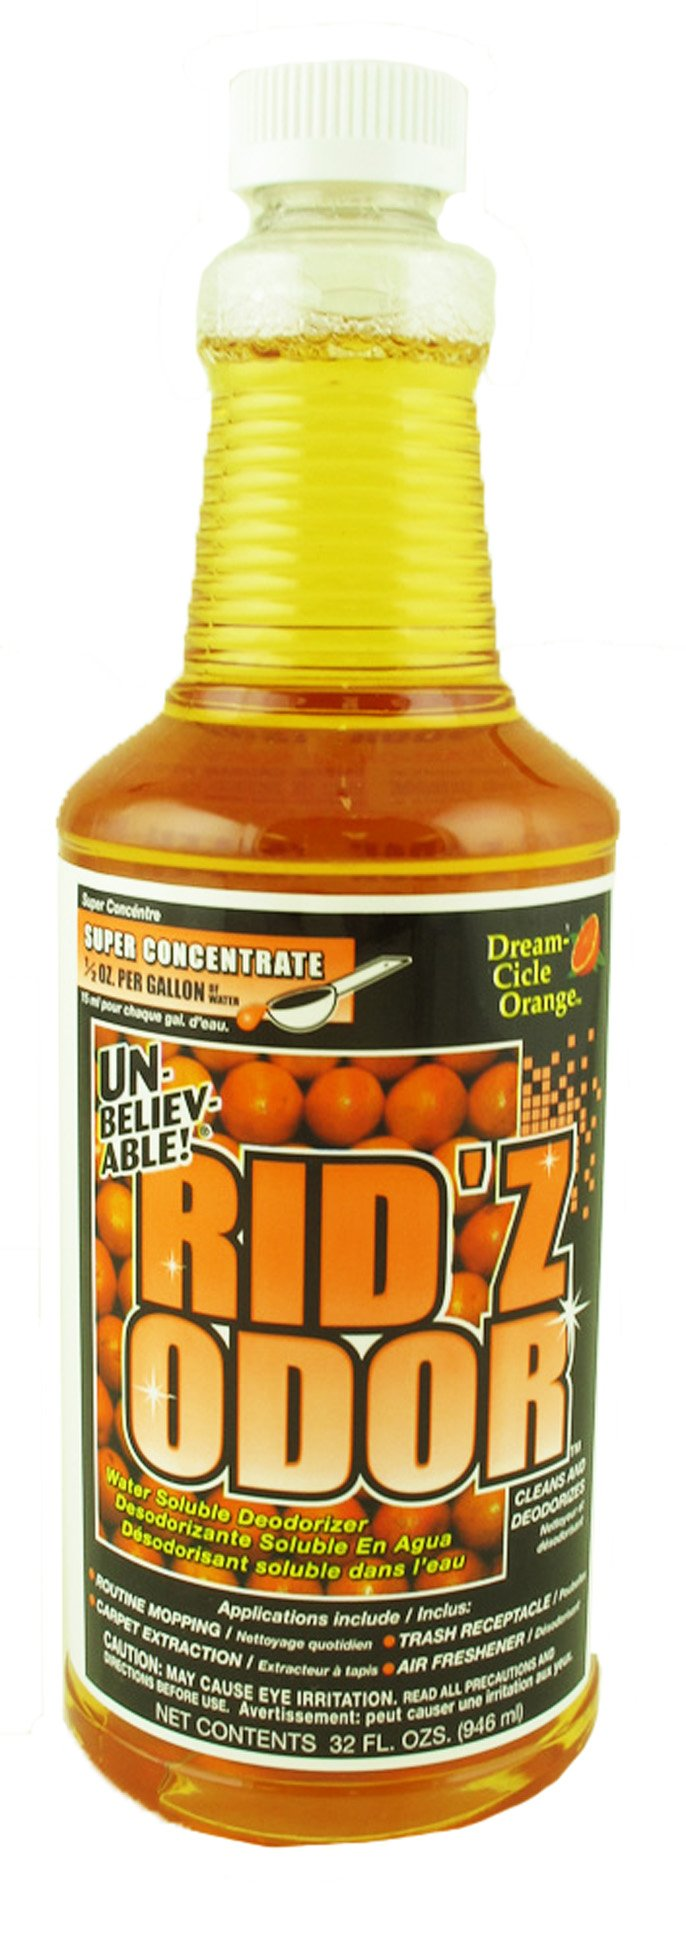 Unbelievable! UKO-502 32 Oz. Rid'z Odor Dream Cicle Orange Super Concentrated Deodorizer (Case of 12)